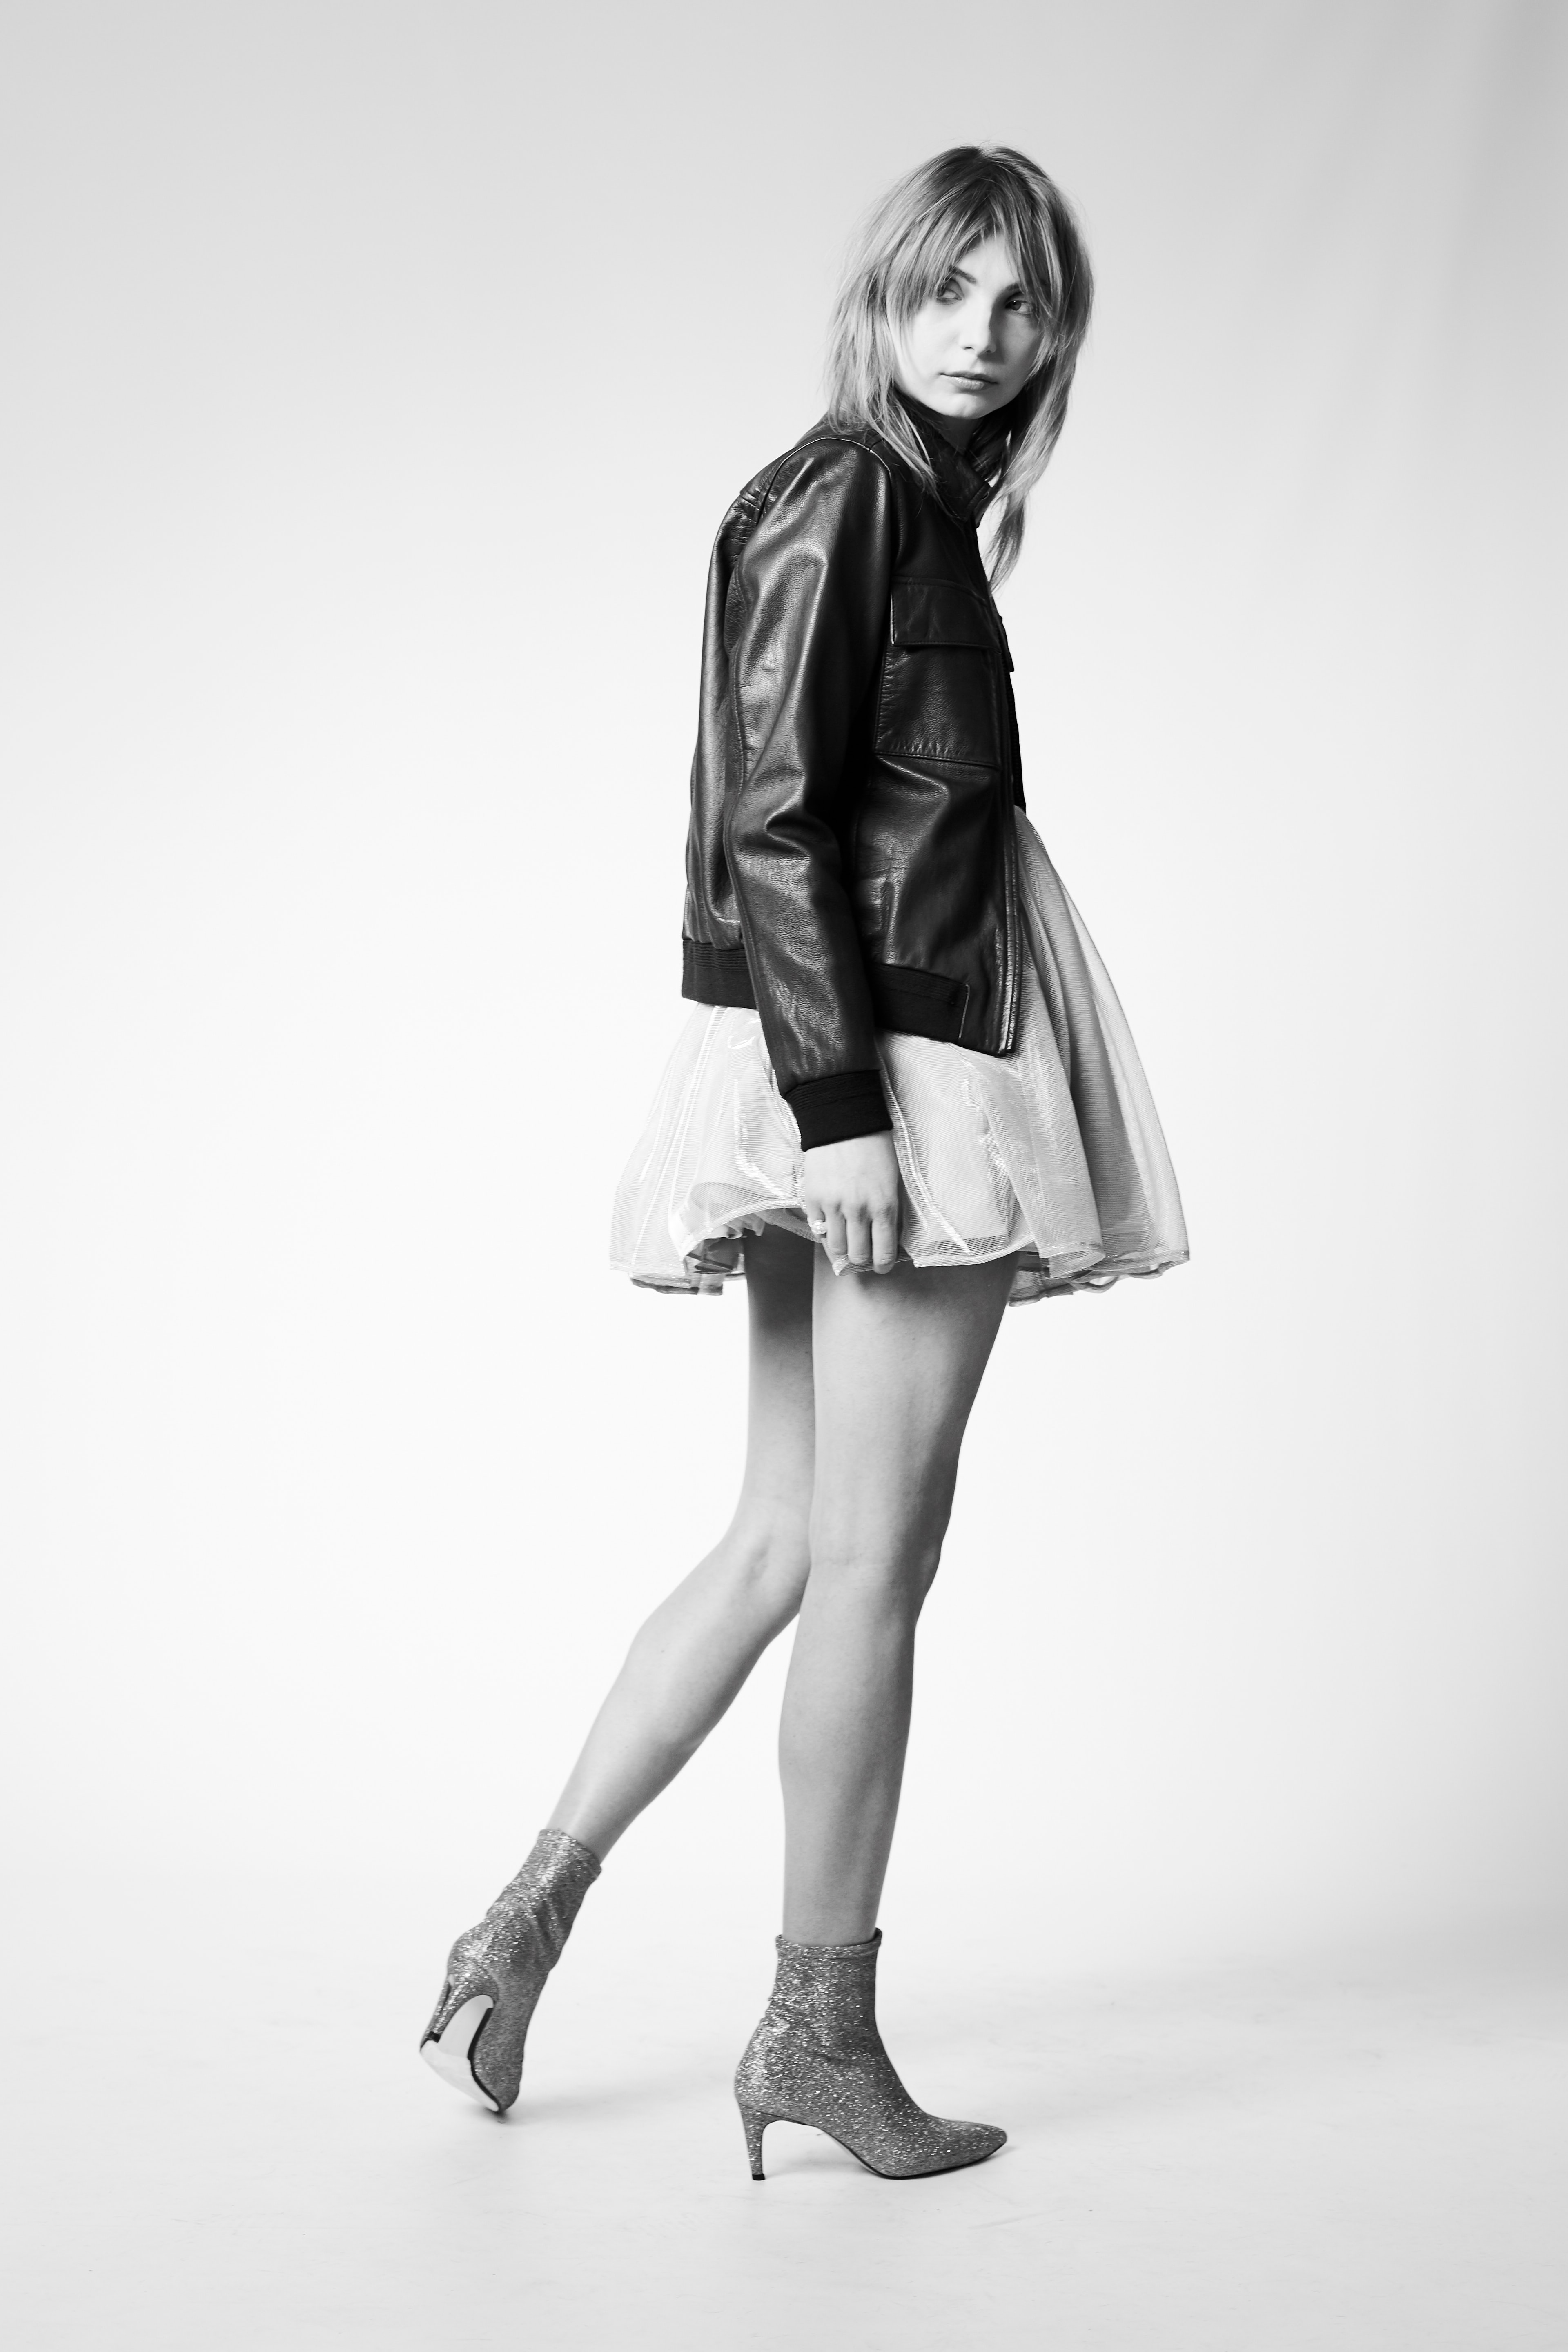 greyscale photo of woman in jacket, skirt, and heeled booties